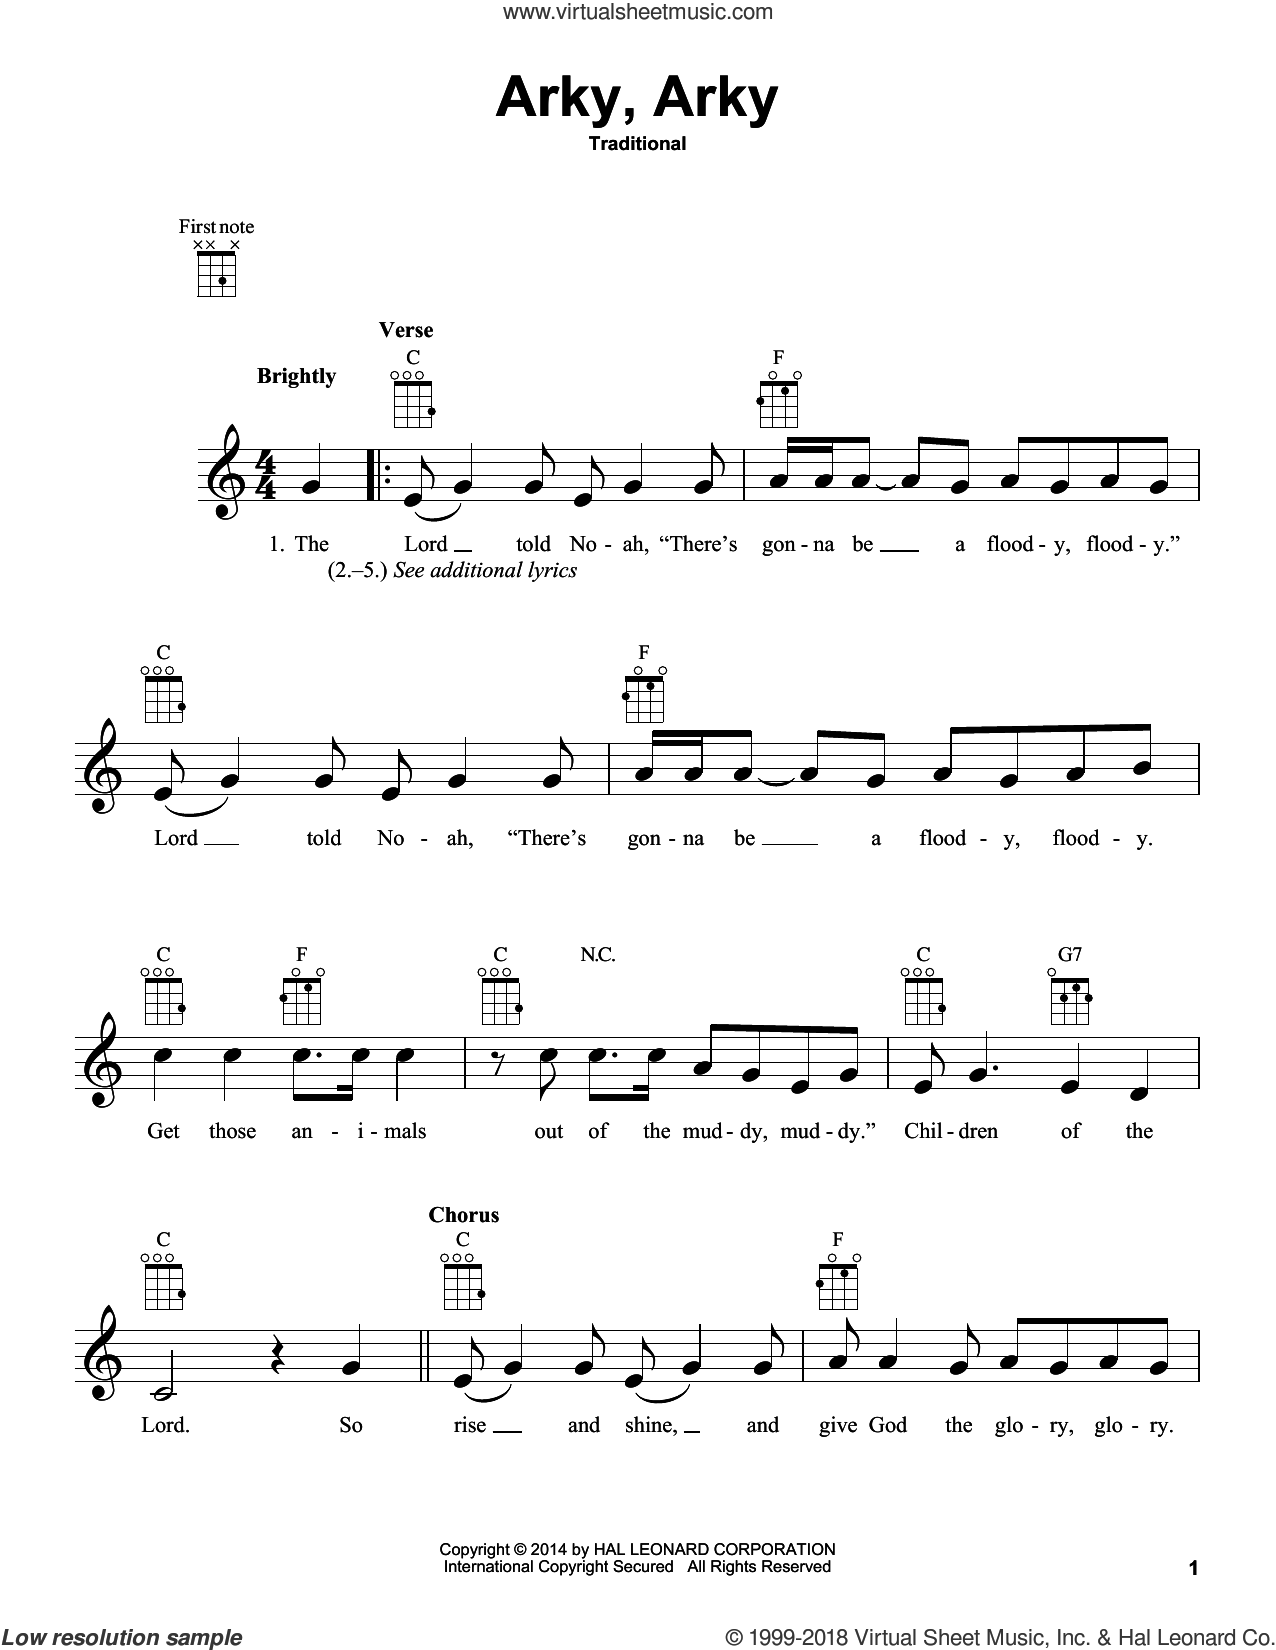 Arky, Arky sheet music for ukulele, intermediate skill level